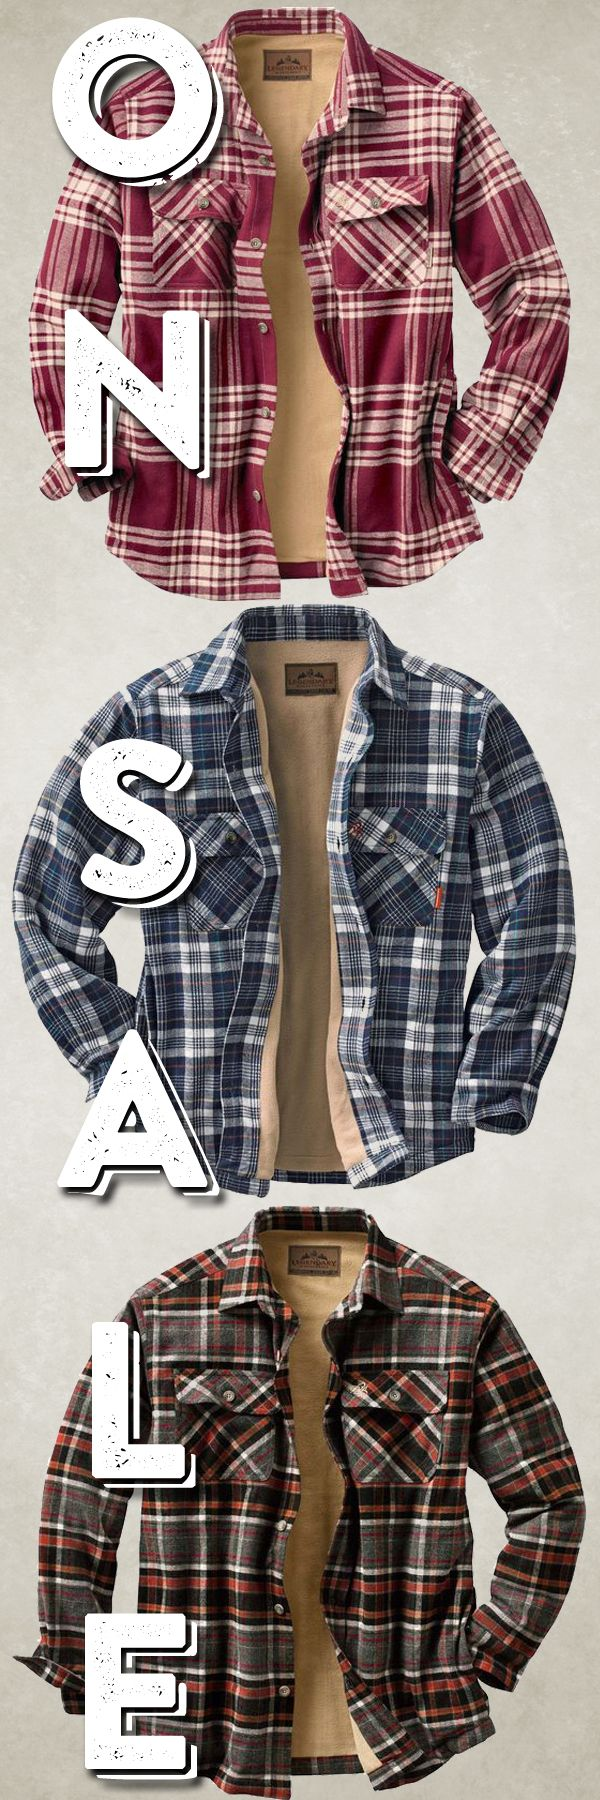 """This cold weather ain't got nothing on me!"" #FaceTheFrost 50% Off our fleece-lined flannel!"